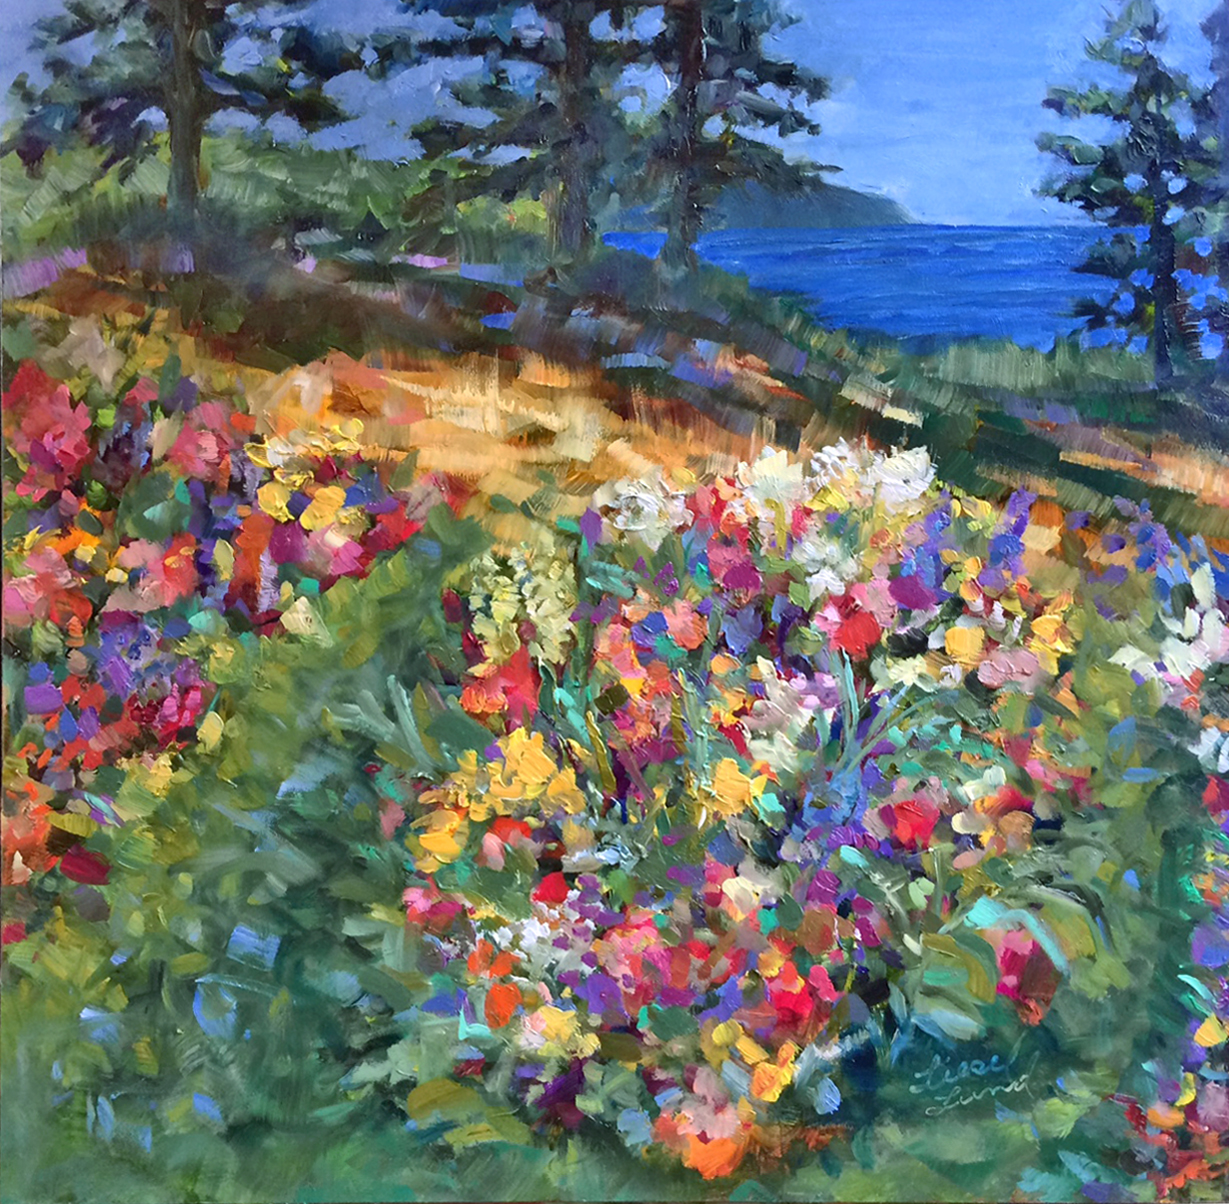 Joyful Vista-plein air, garden & water view.jpg